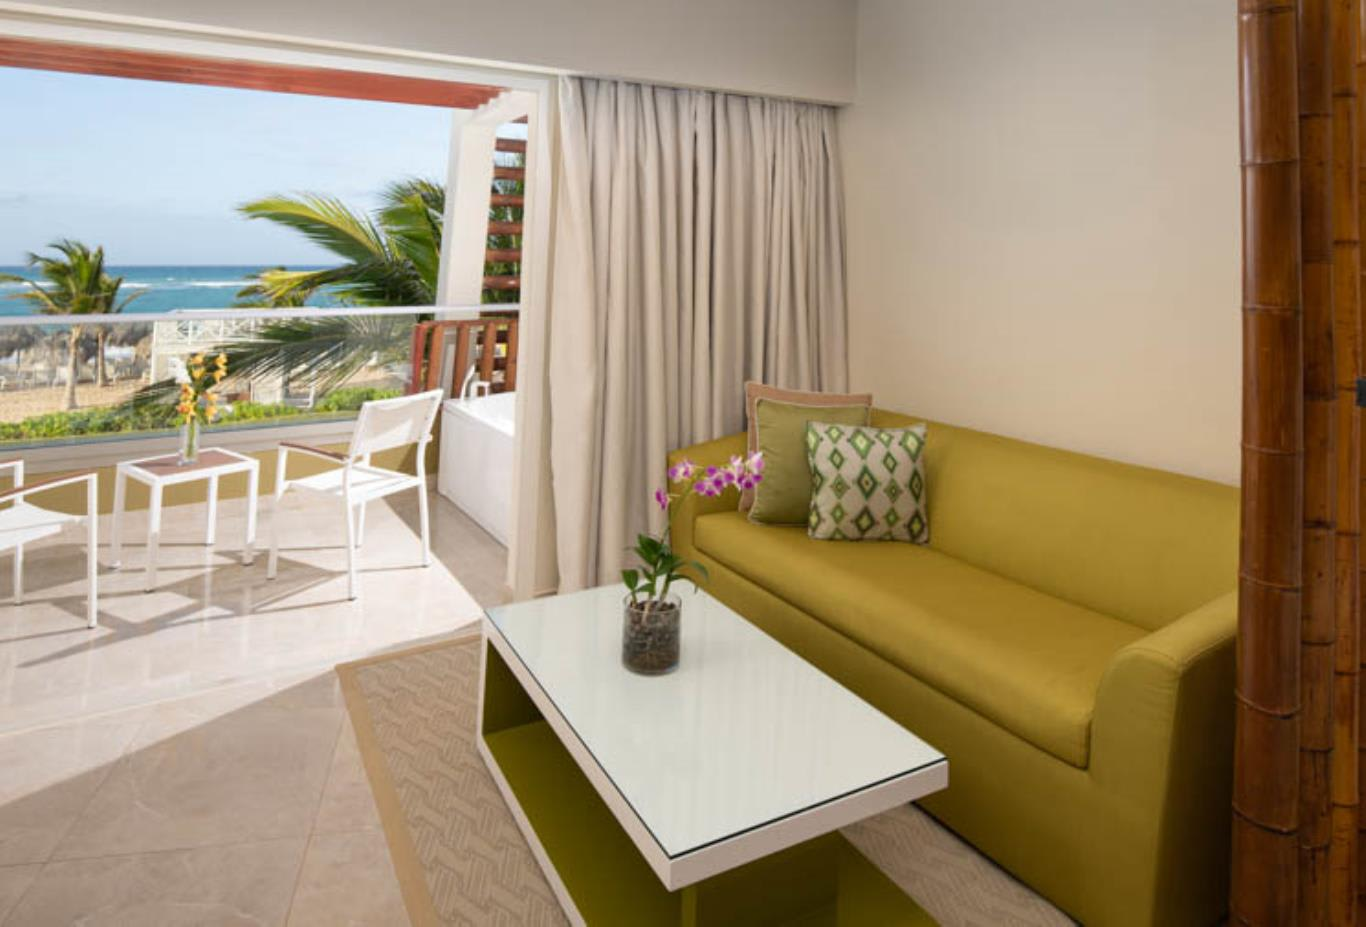 Preferred Club Junior Suite ocean view terrace